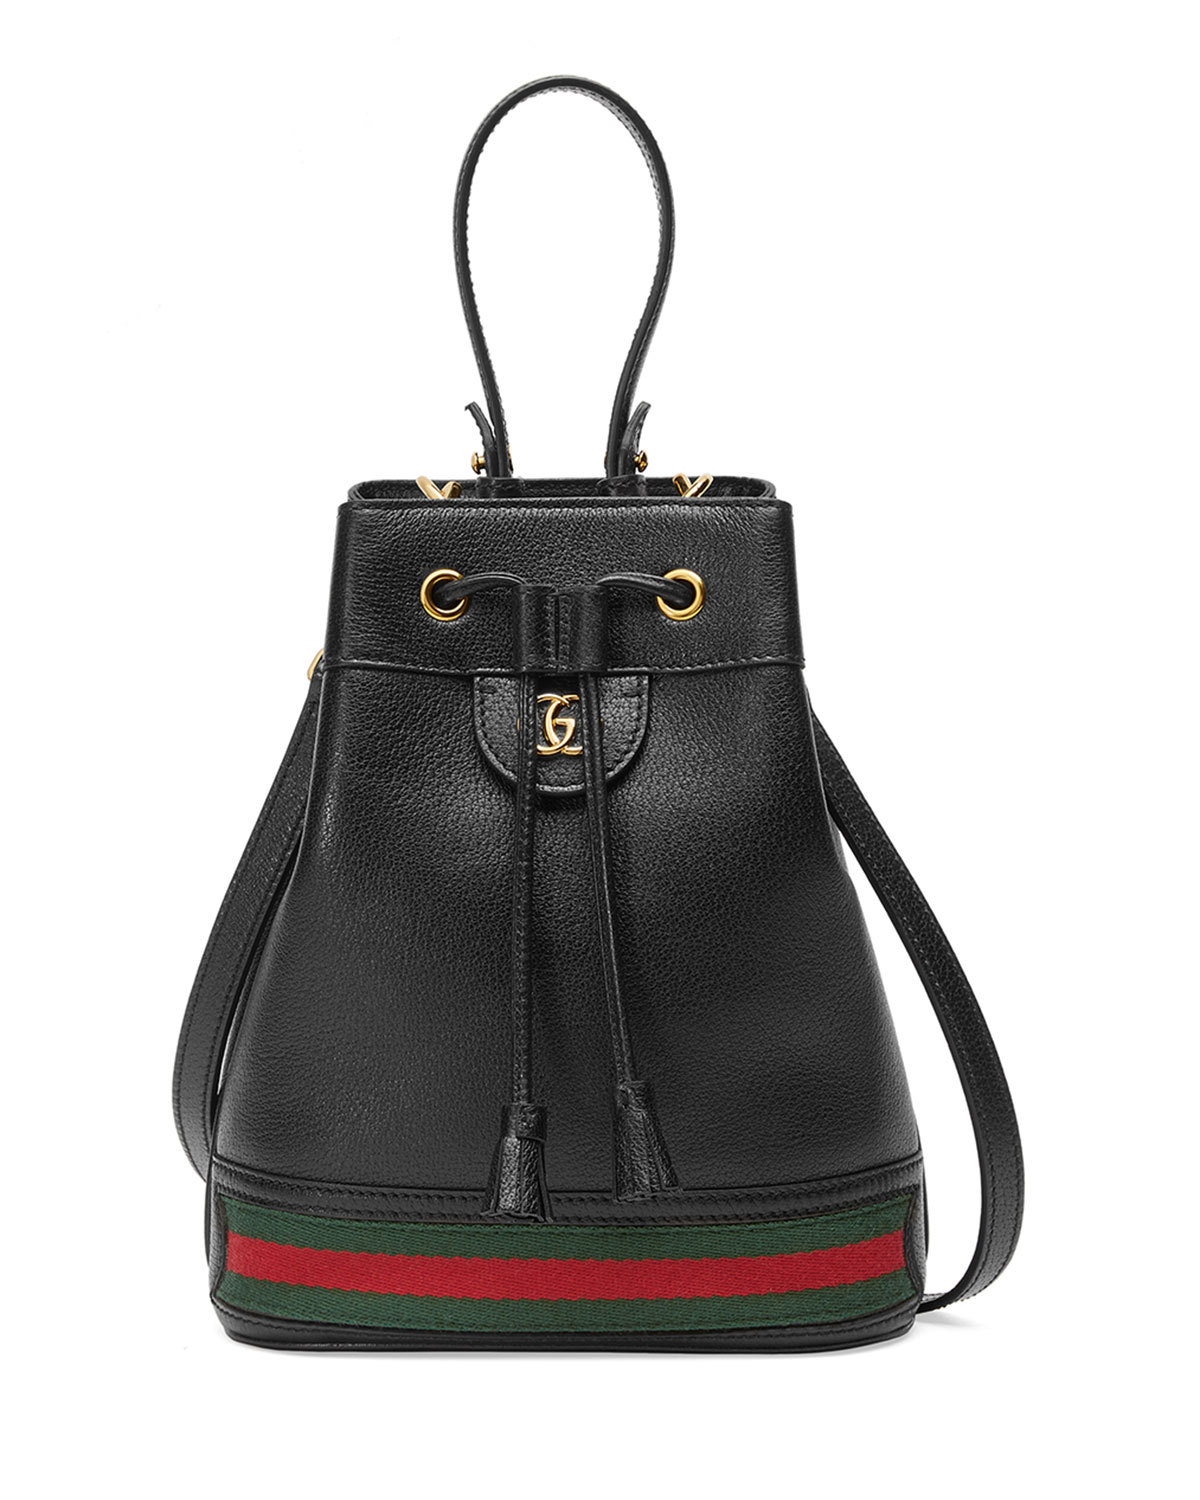 Gucci Bags OPHIDIA SMALL DRAWSTRING BUCKET BAG